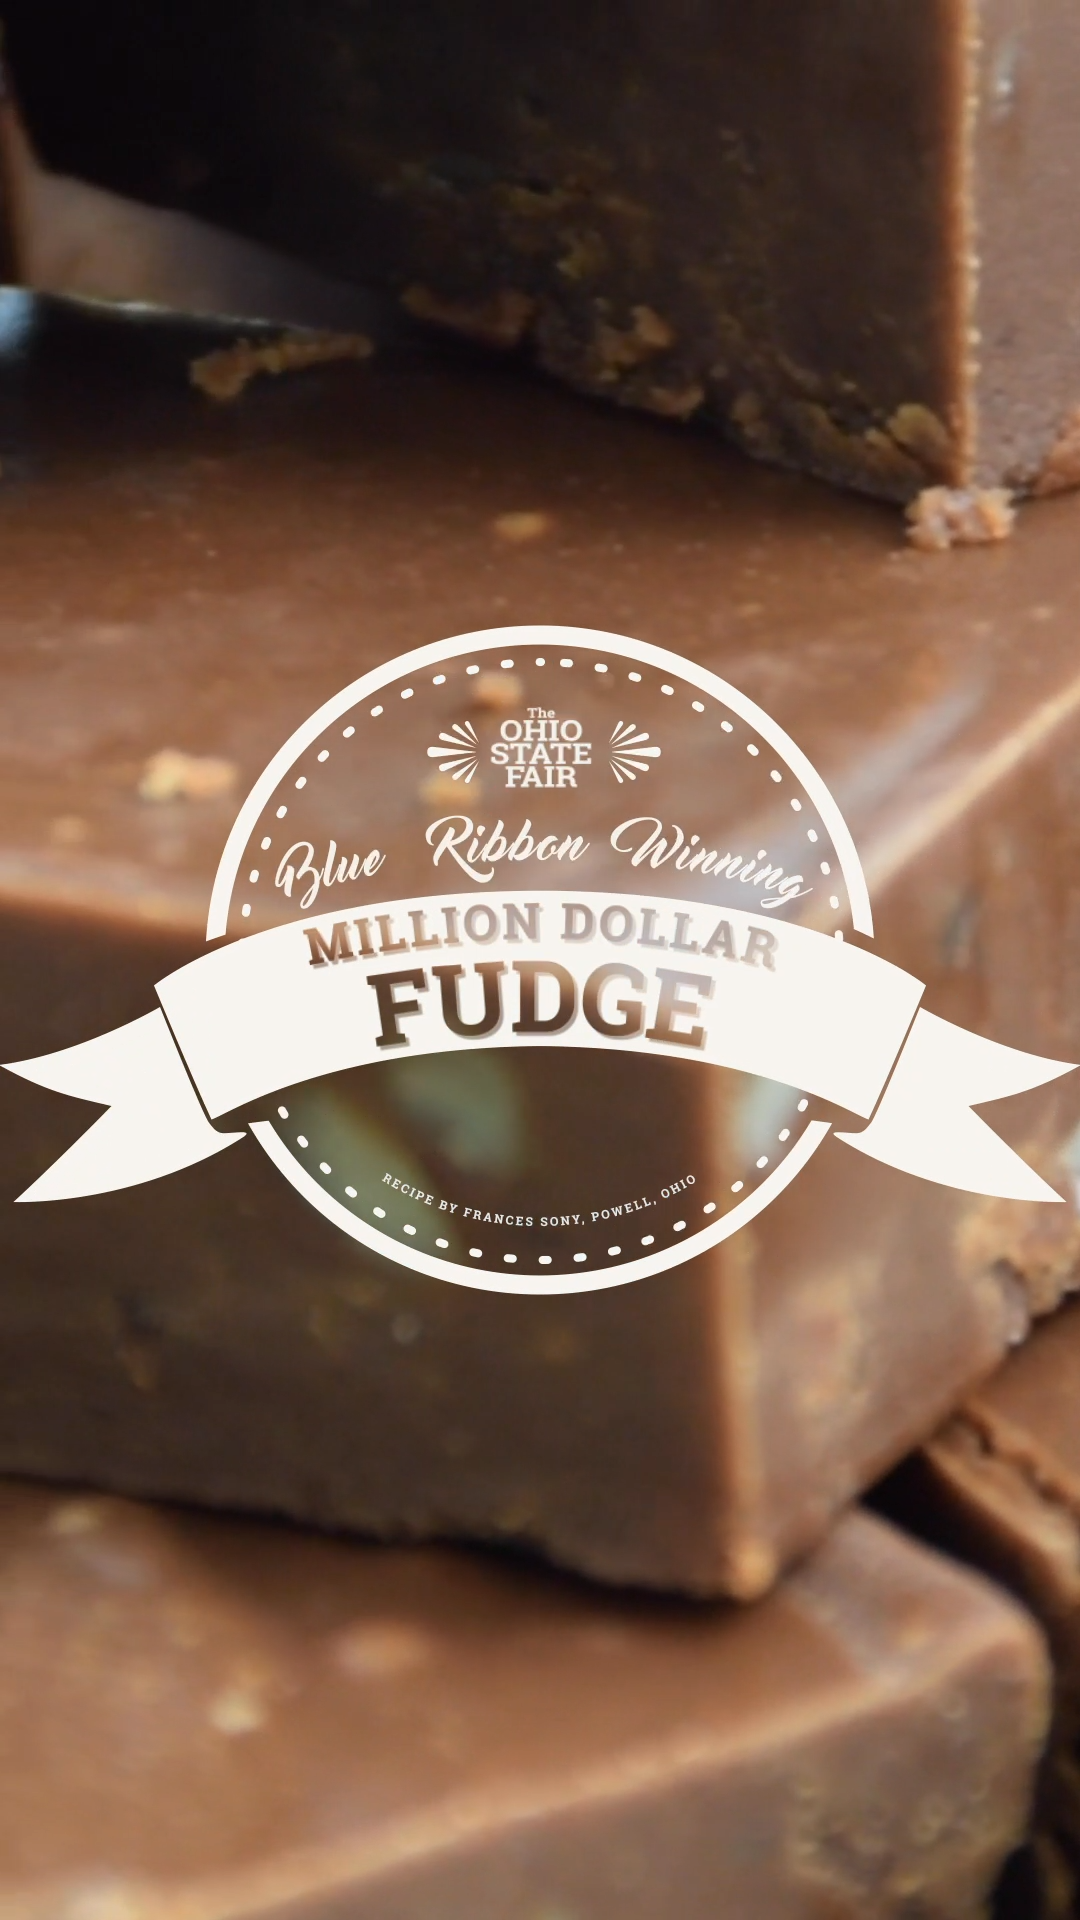 Try this melt-in-your mouth, award-winning fudge recipe at home! This delicious blue ribbon recipe by Frances Sony of Powell won first place in the candies and fudge division at the 2018 Ohio State Fair.